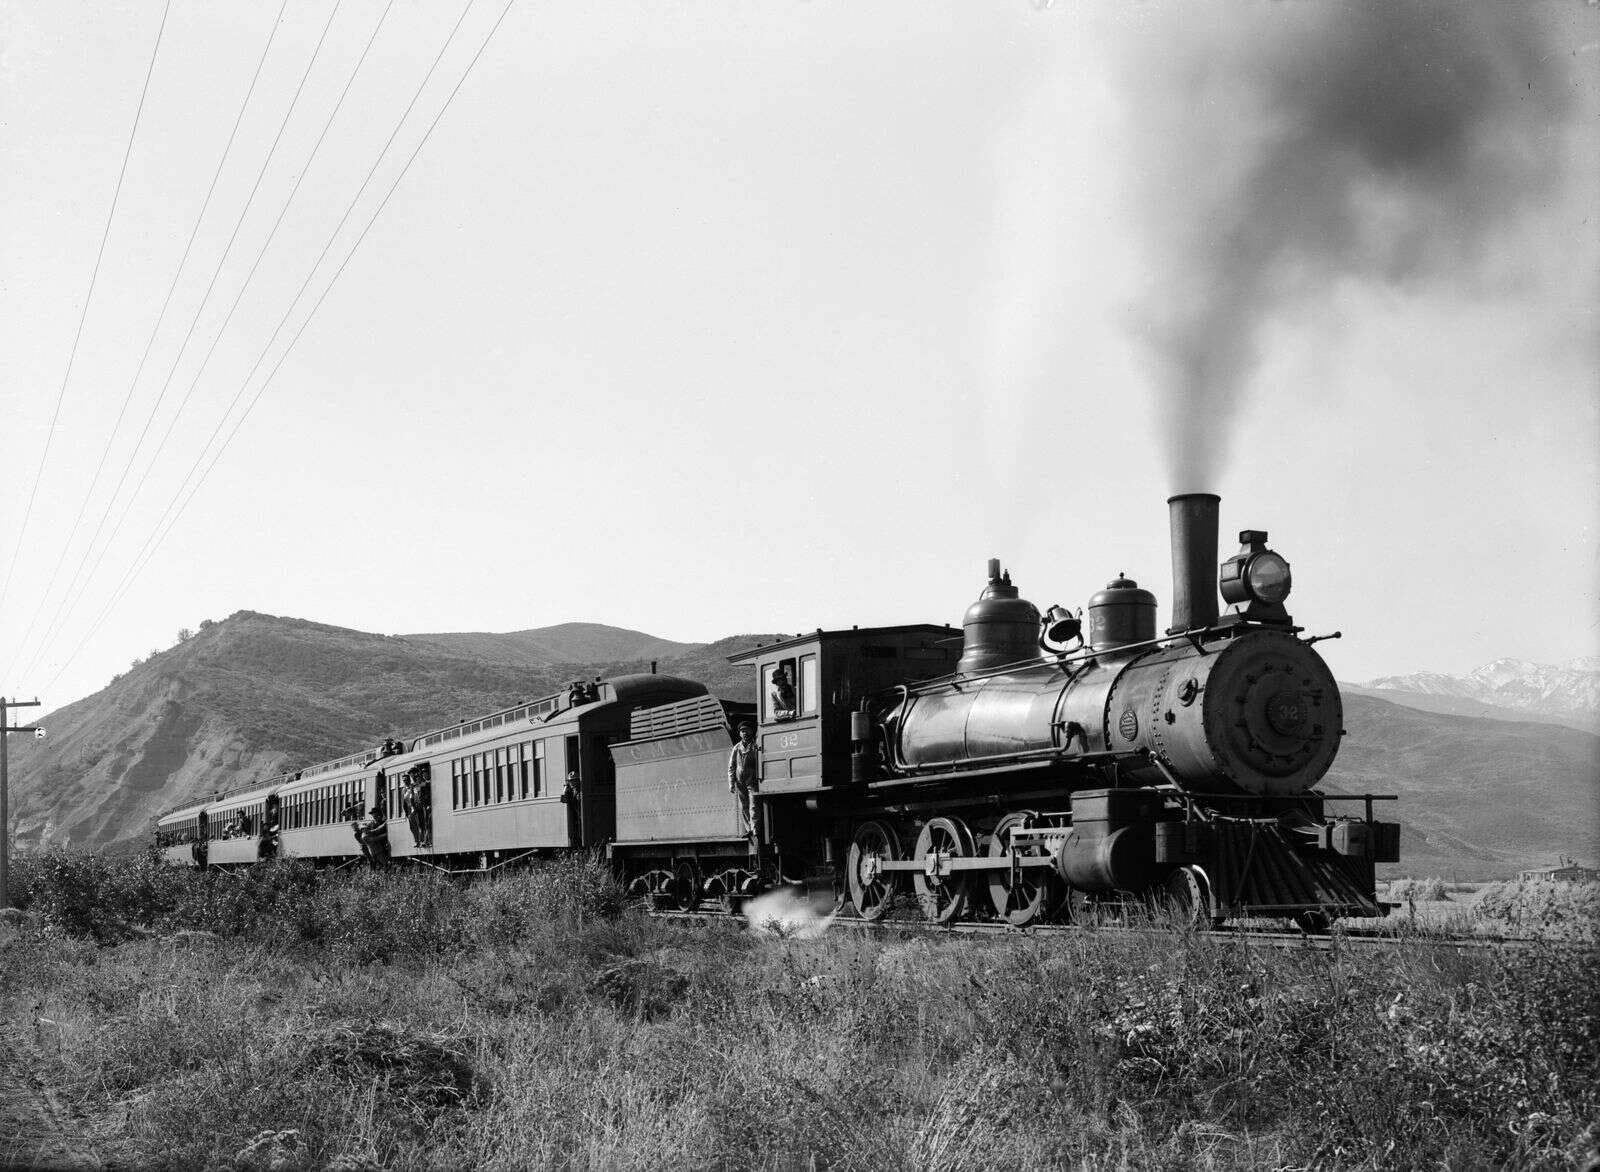 One b/w glass-plate negative of engine 32, Colorado Midland Railroad passenger train.  Several people are leaning out of the passenger cars.  Power lines are visible on the left side of the photo.  The Shale Bluffs are in the background. Circa 1900. Cozy Point Area.